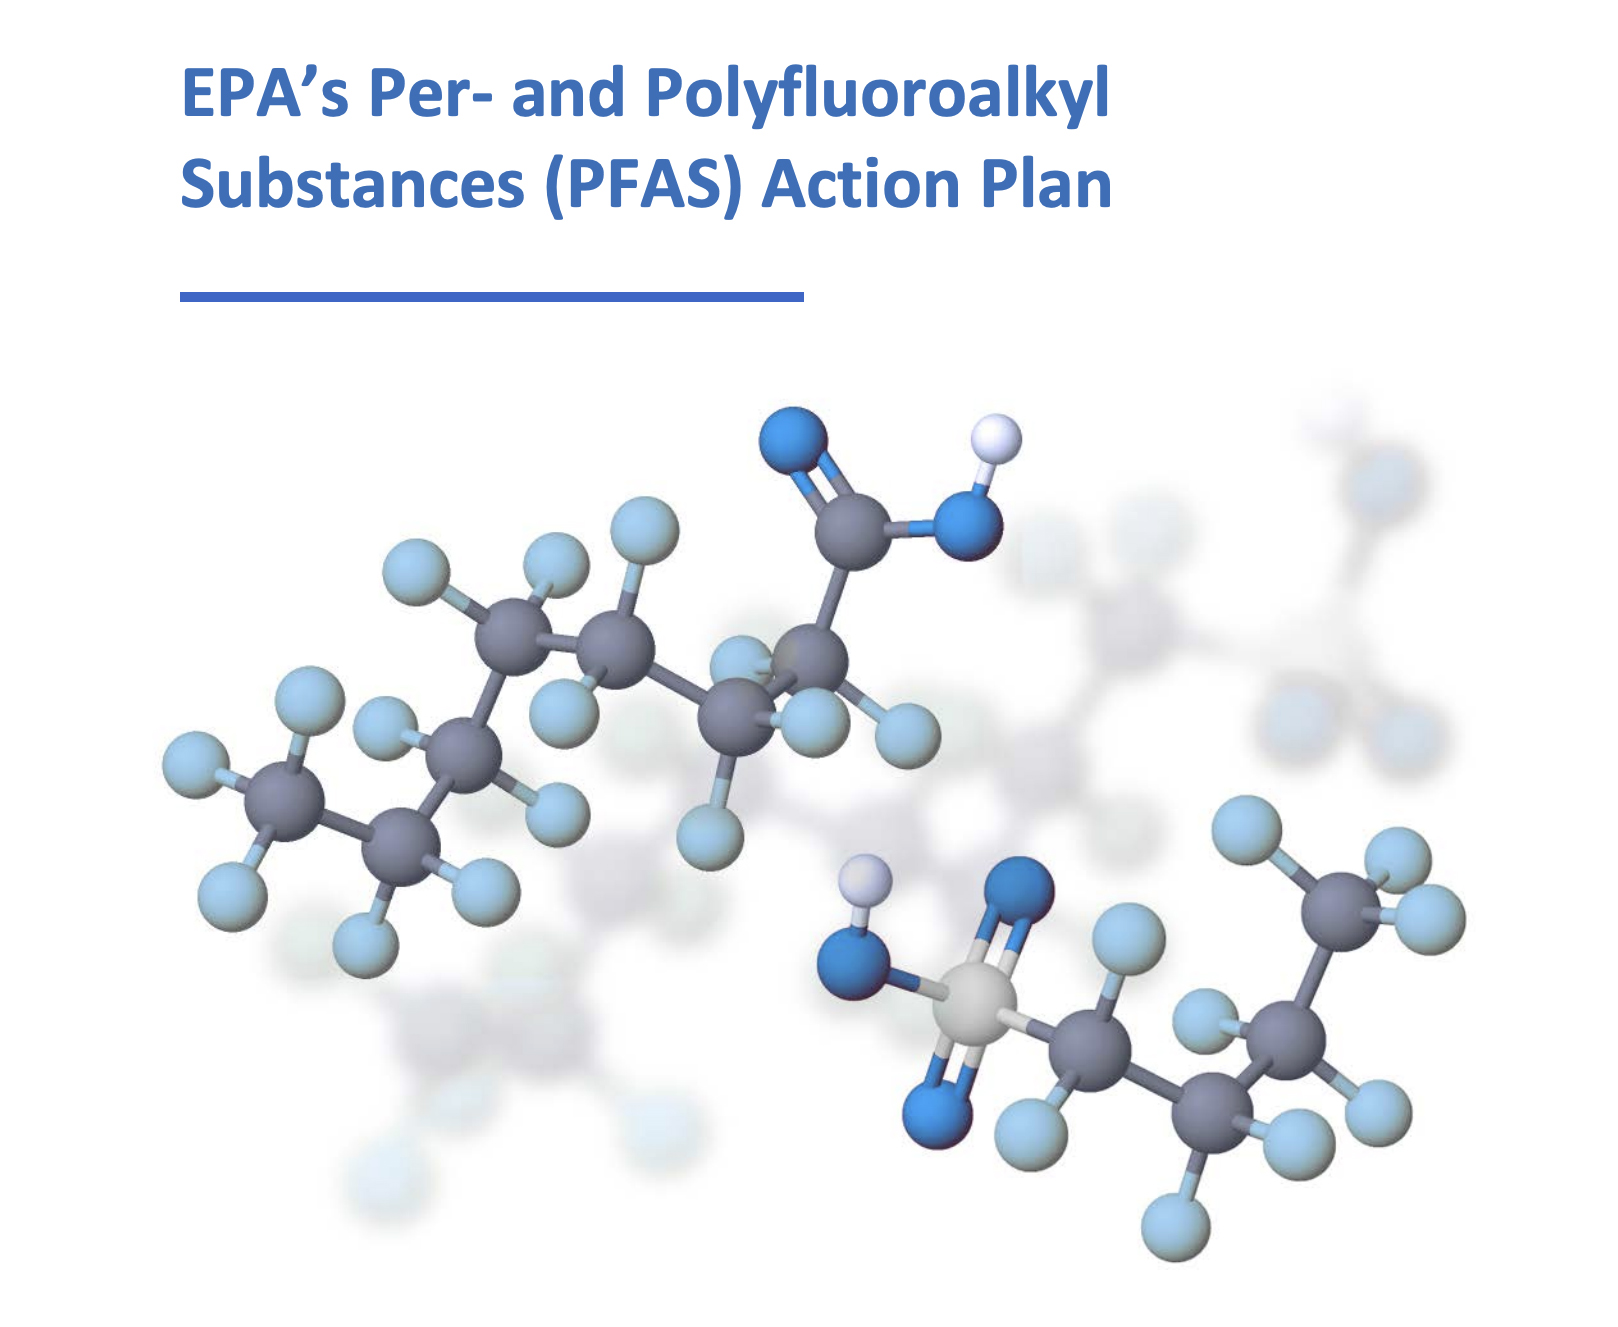 This image shows the cover of the EPA's PFAS Action Plan.